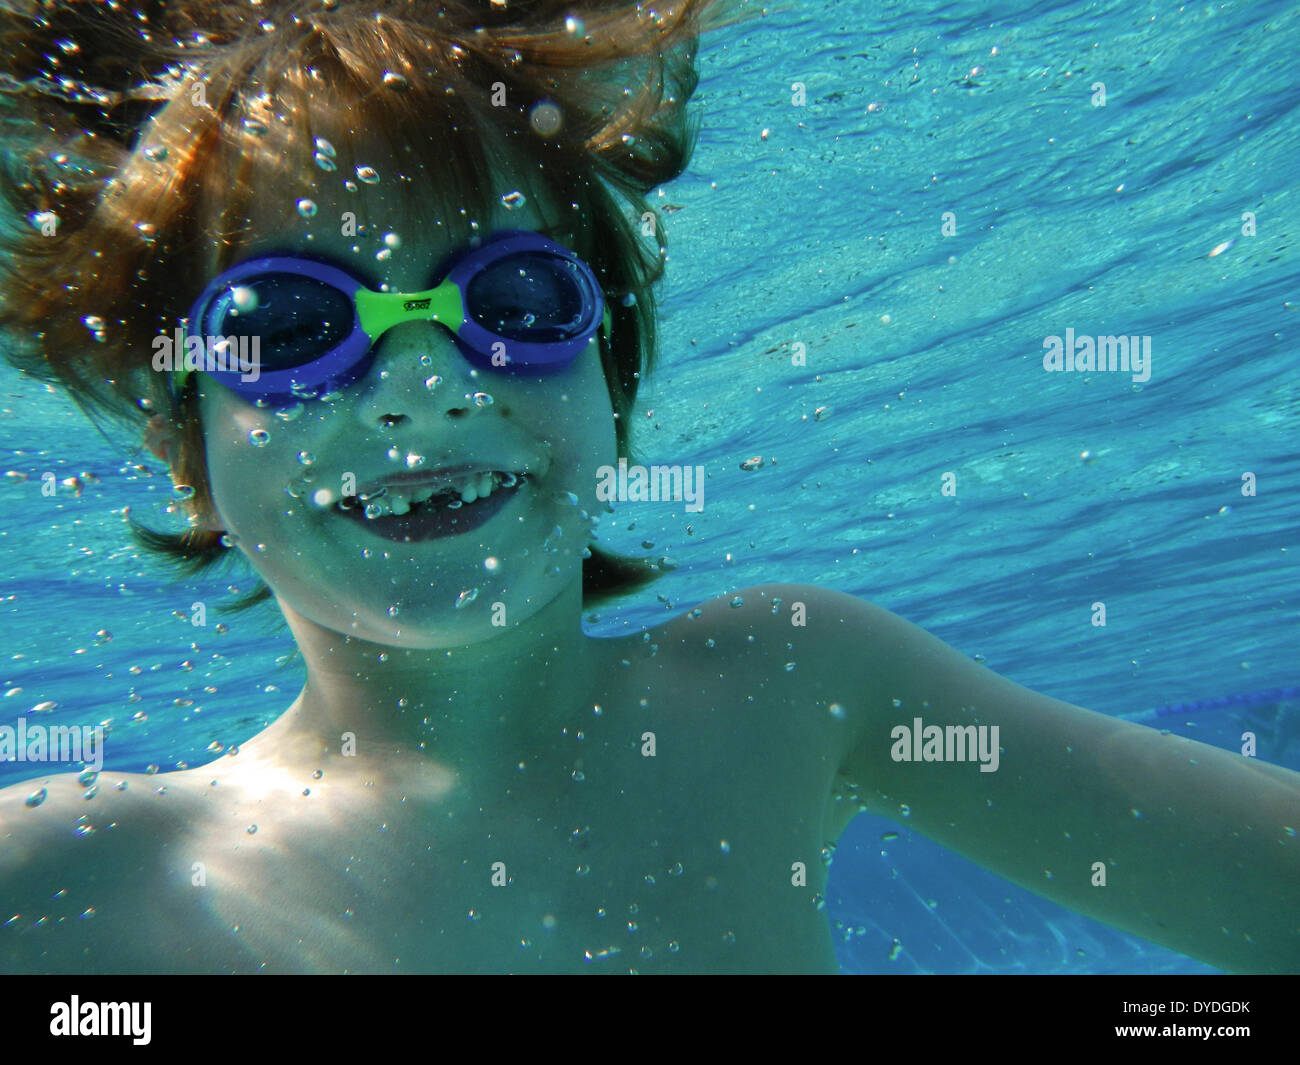 Seven year old boy underwater. - Stock Image